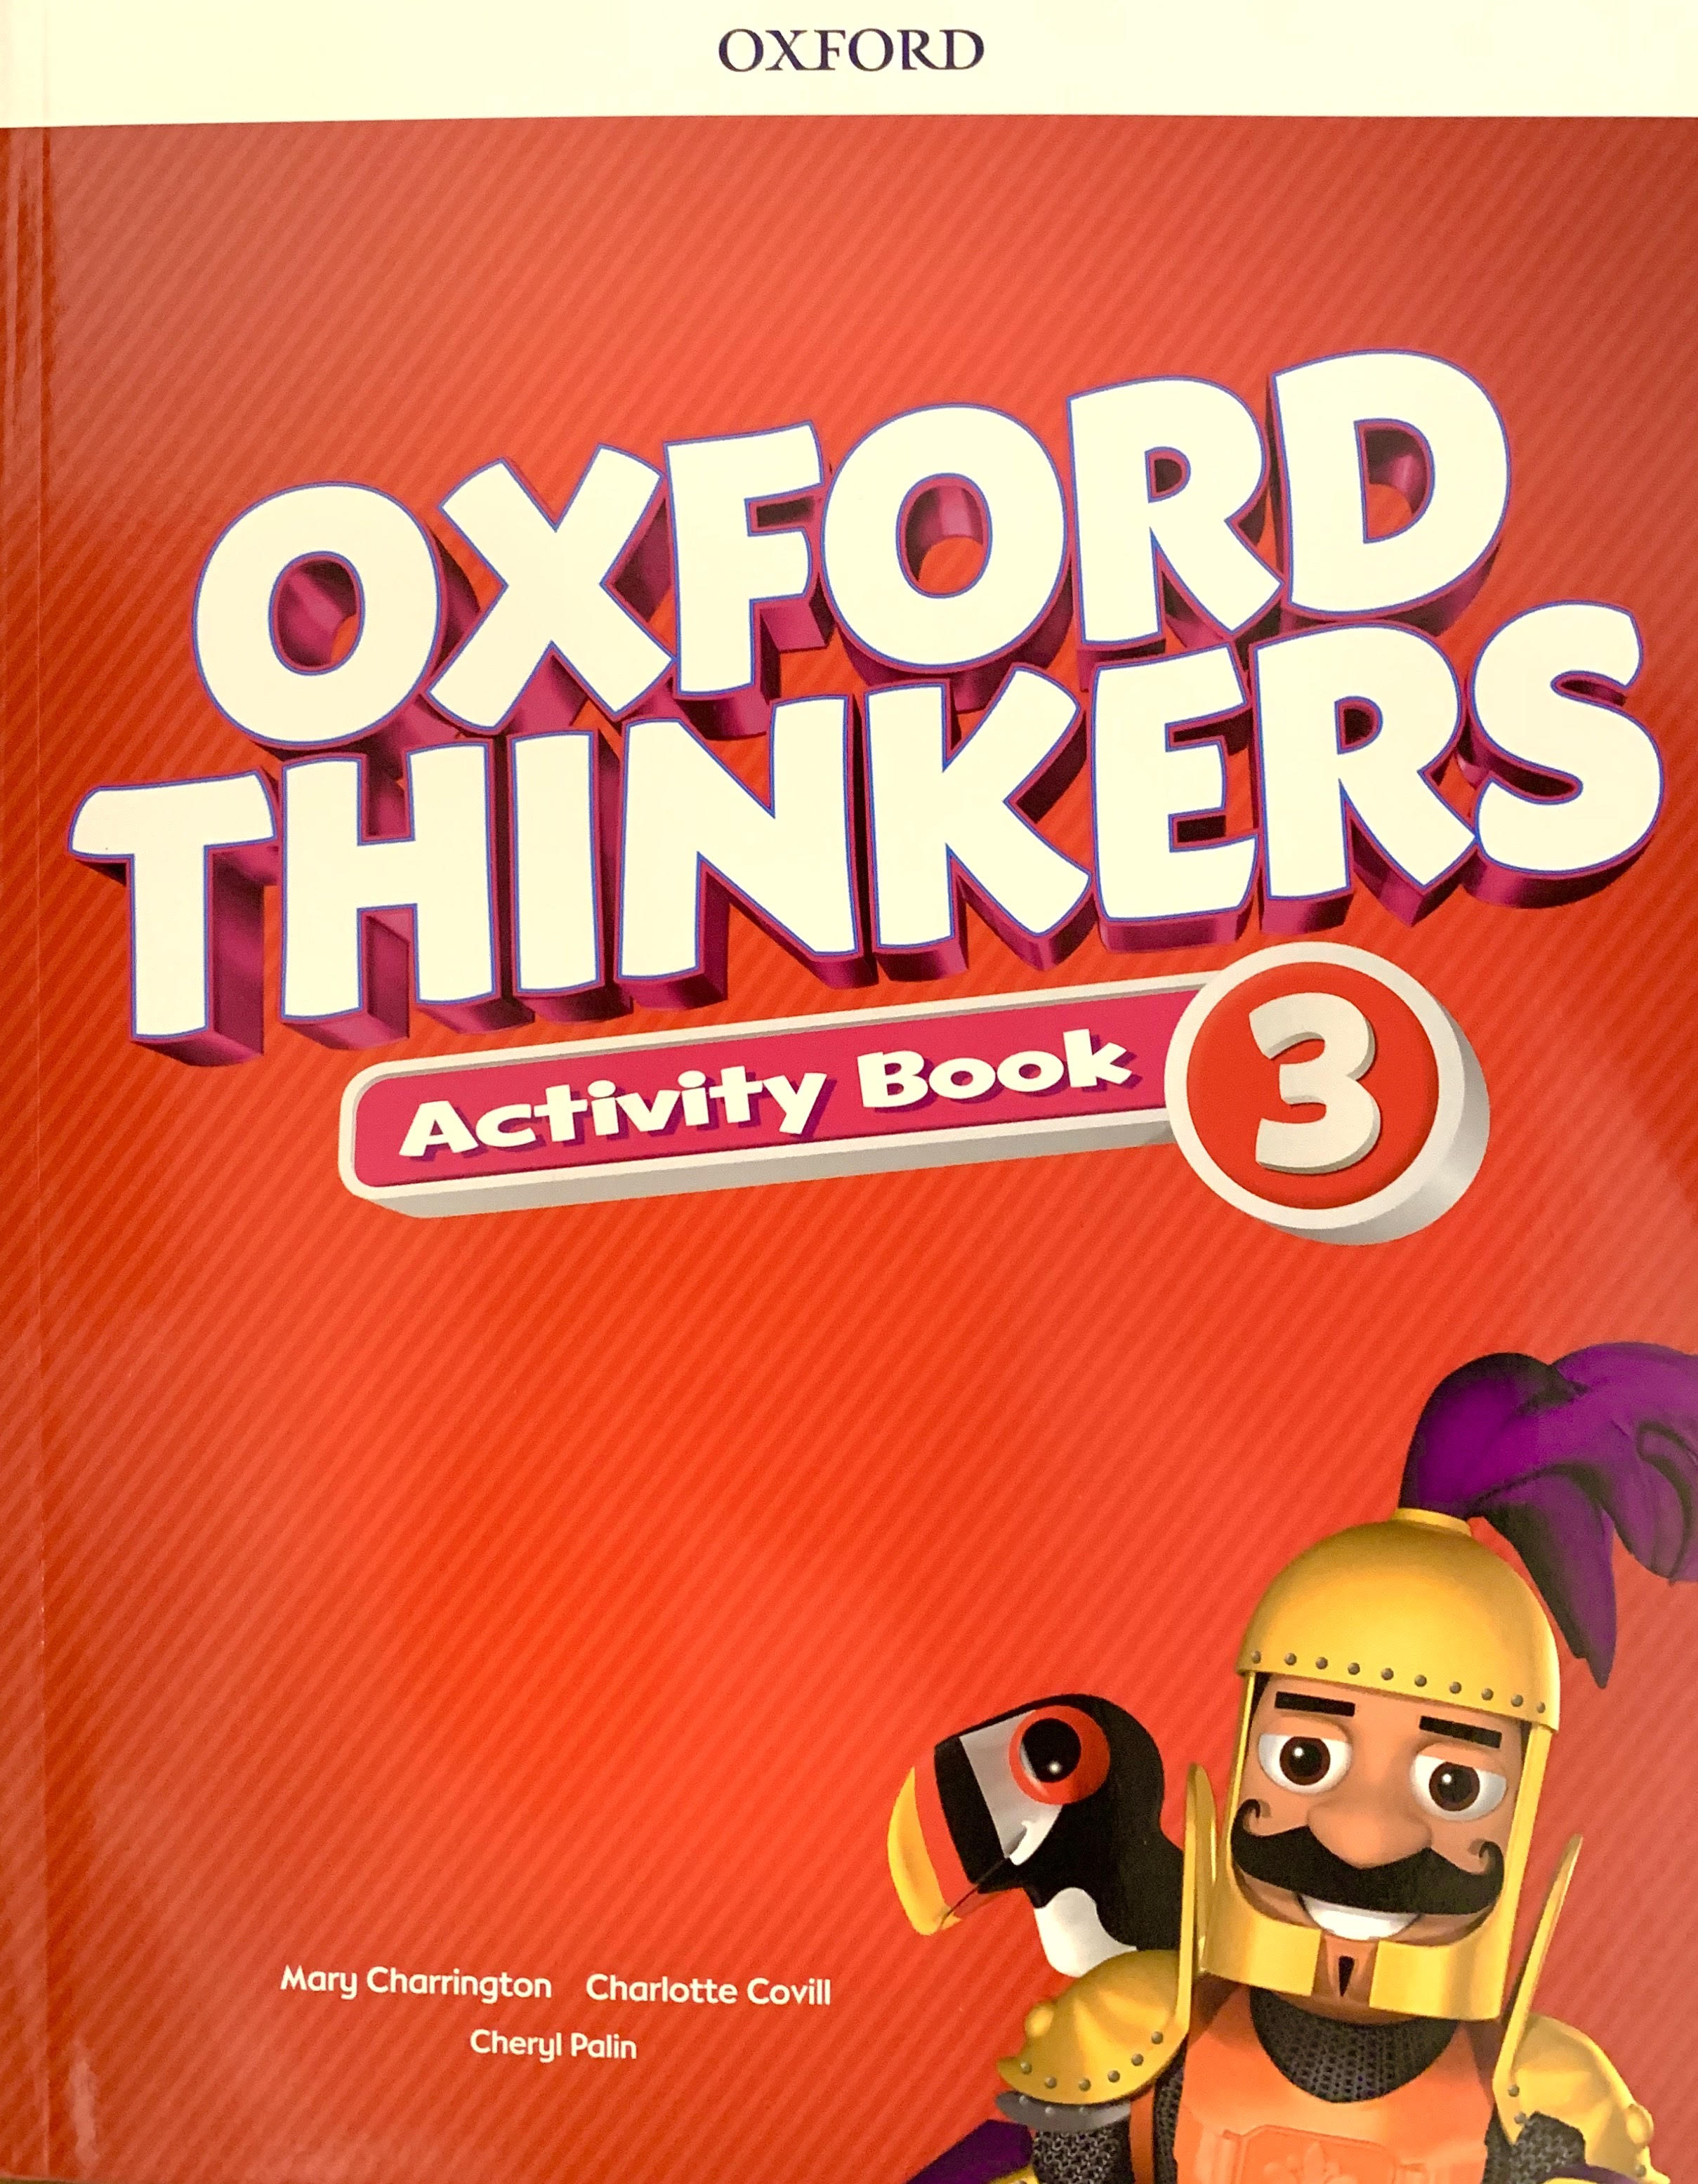 Oxford Thinkers Activity 3